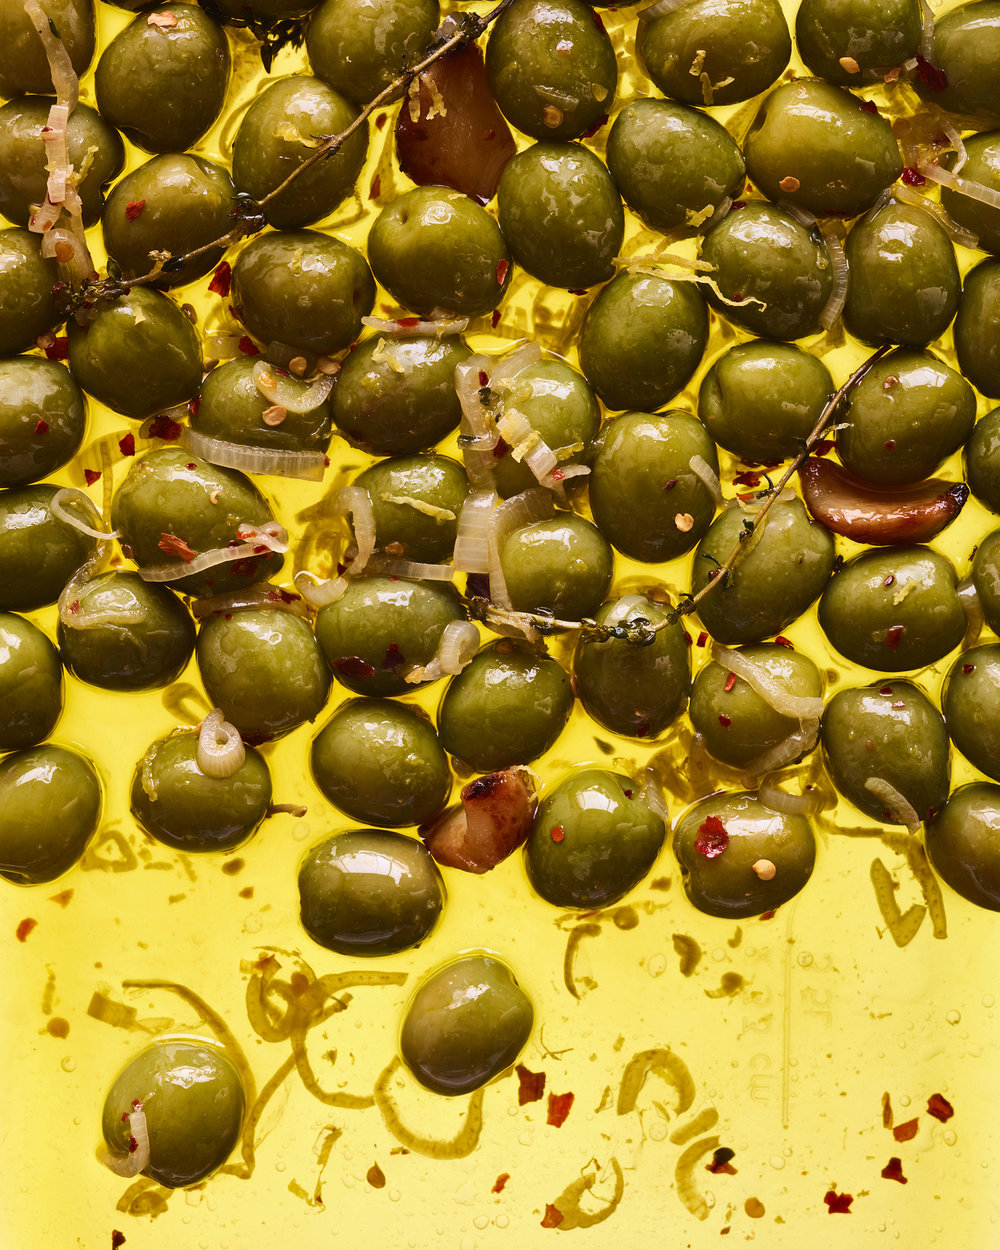 030817_WGCCB_MARINATED_OLIVES_V2_02_f.jpg